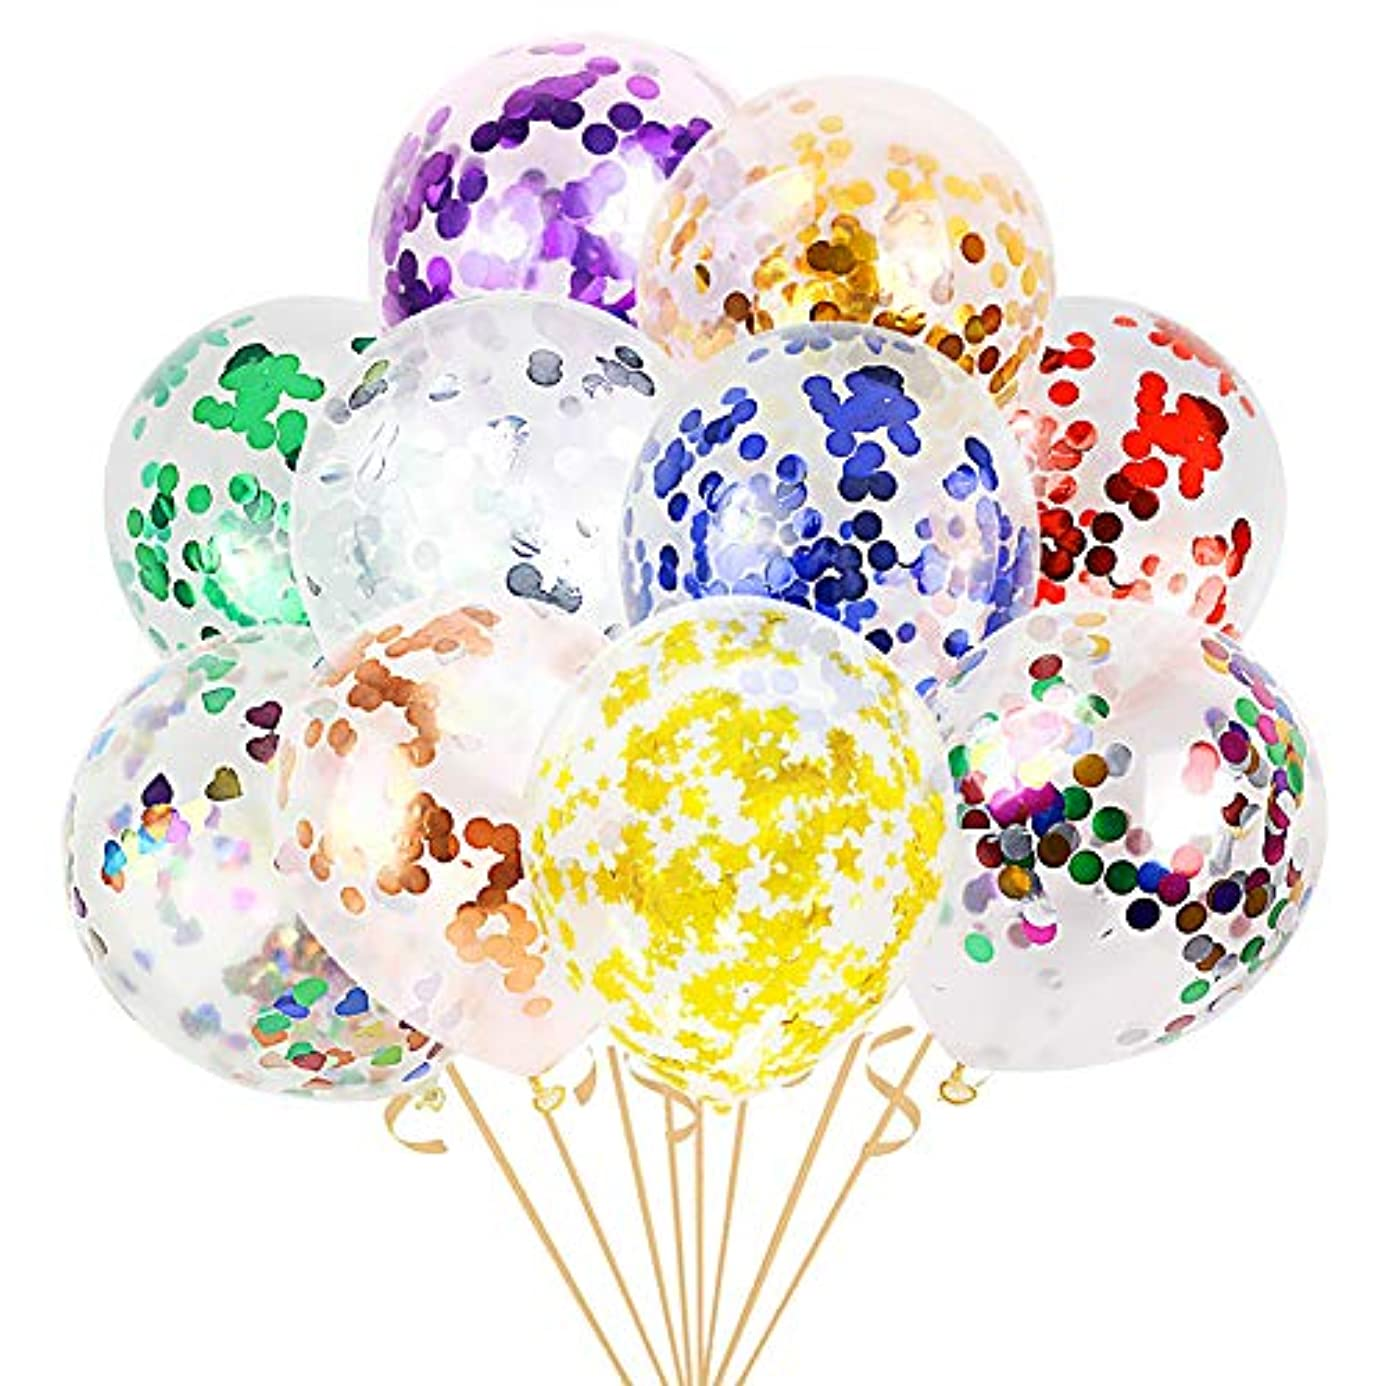 LUDEOU 50 Pcs Rich Color Confetti Balloons Premium 12 Inch Latex Balloons Birthday Baby Party Decorations xqh4748982